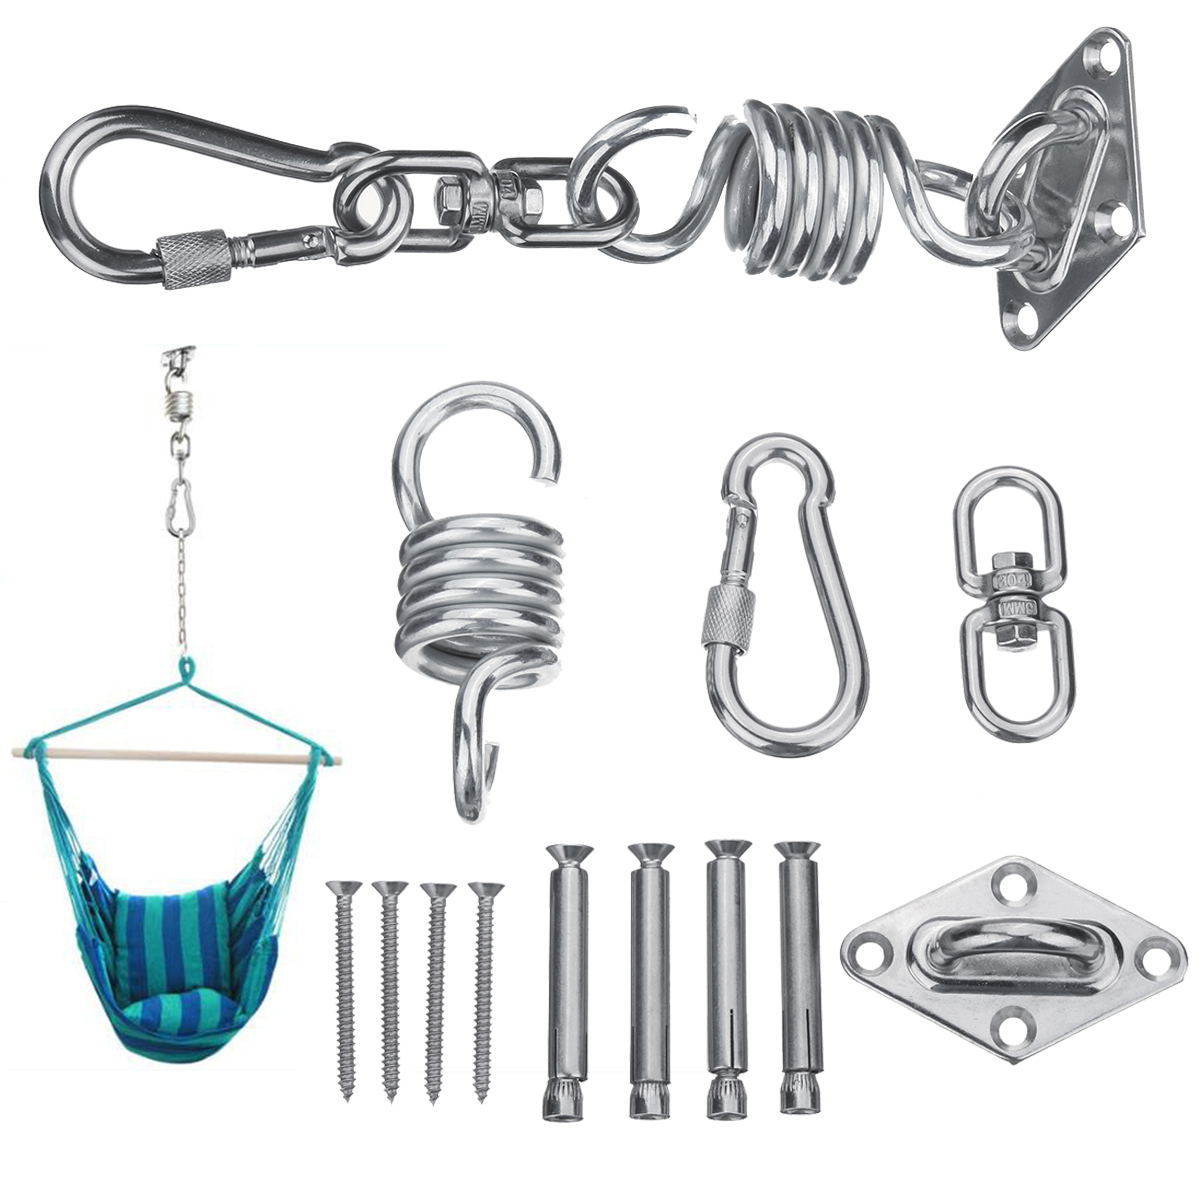 hanging chair bolt antique childs rocking stainless steel hammock kit ceiling mount spring swivel snap hook accessories